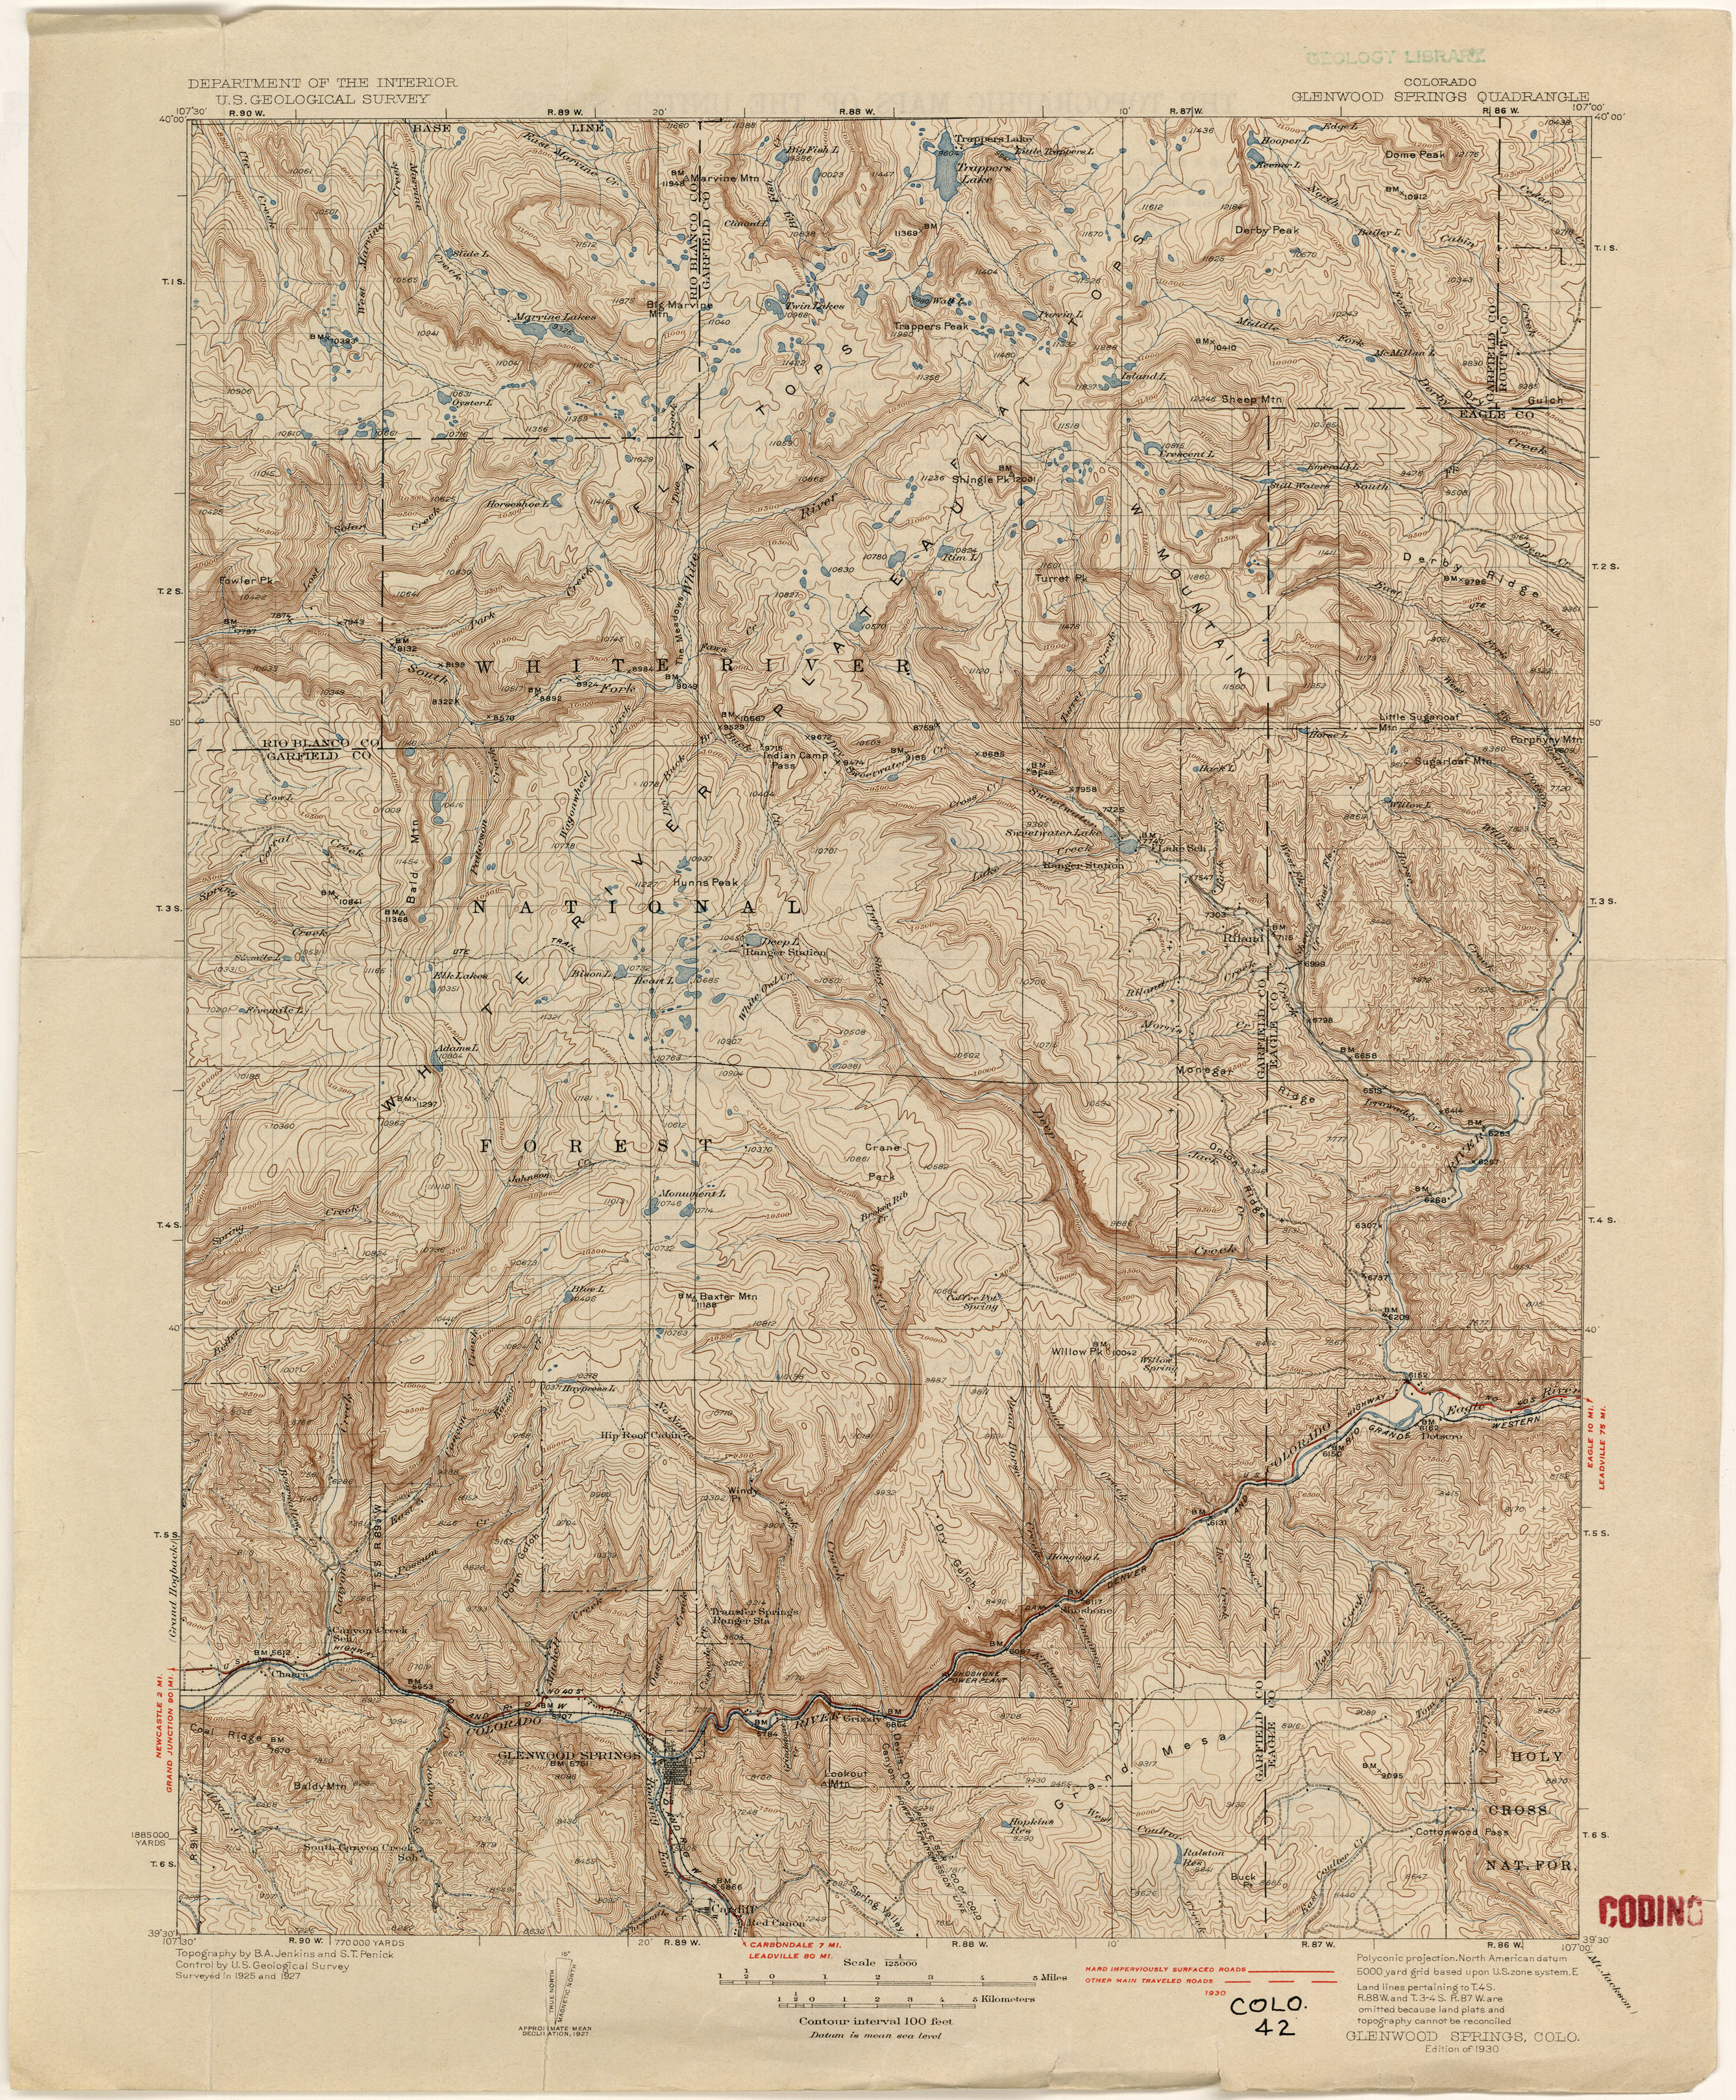 Topographic Map Of A Mountain.Colorado Historical Topographic Maps Perry Castaneda Map